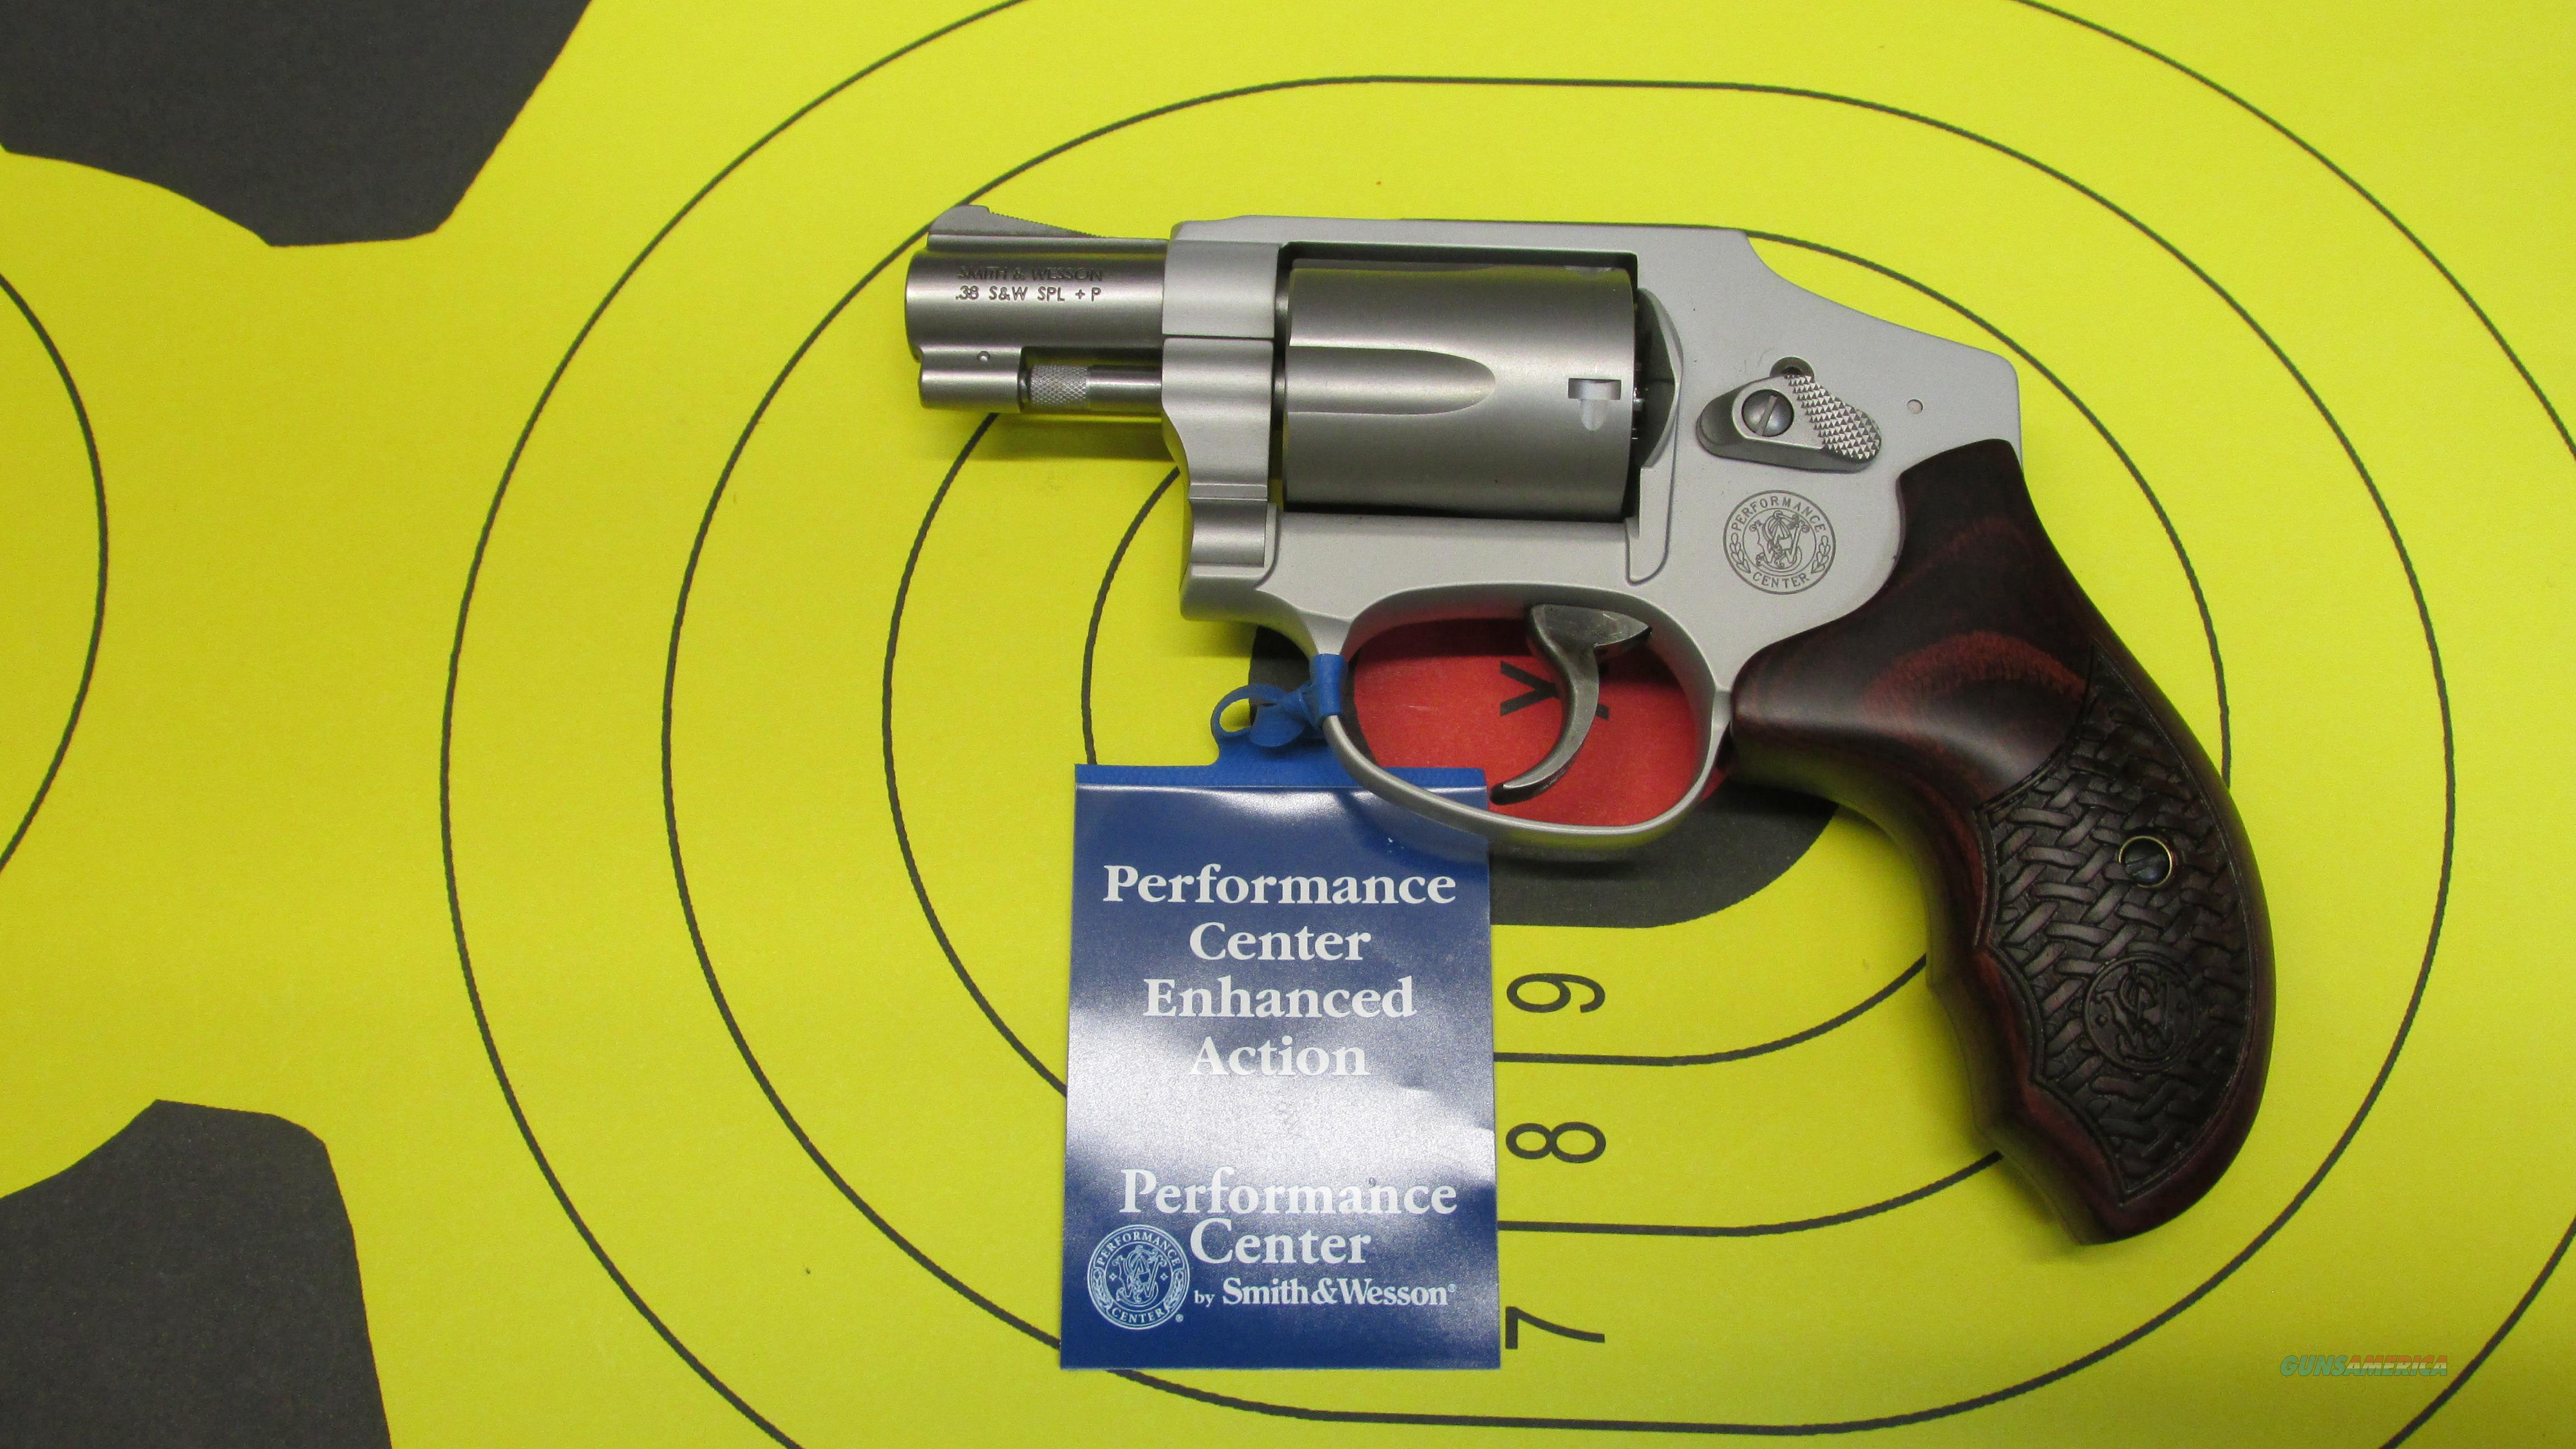 "SMITH &WESSON 642-2 PC ENHANCED ACTION .38 SPL 5 SHOT REVOLVER, 1.875"" BARREL  Guns > Pistols > Smith & Wesson Revolvers > Performance Center"